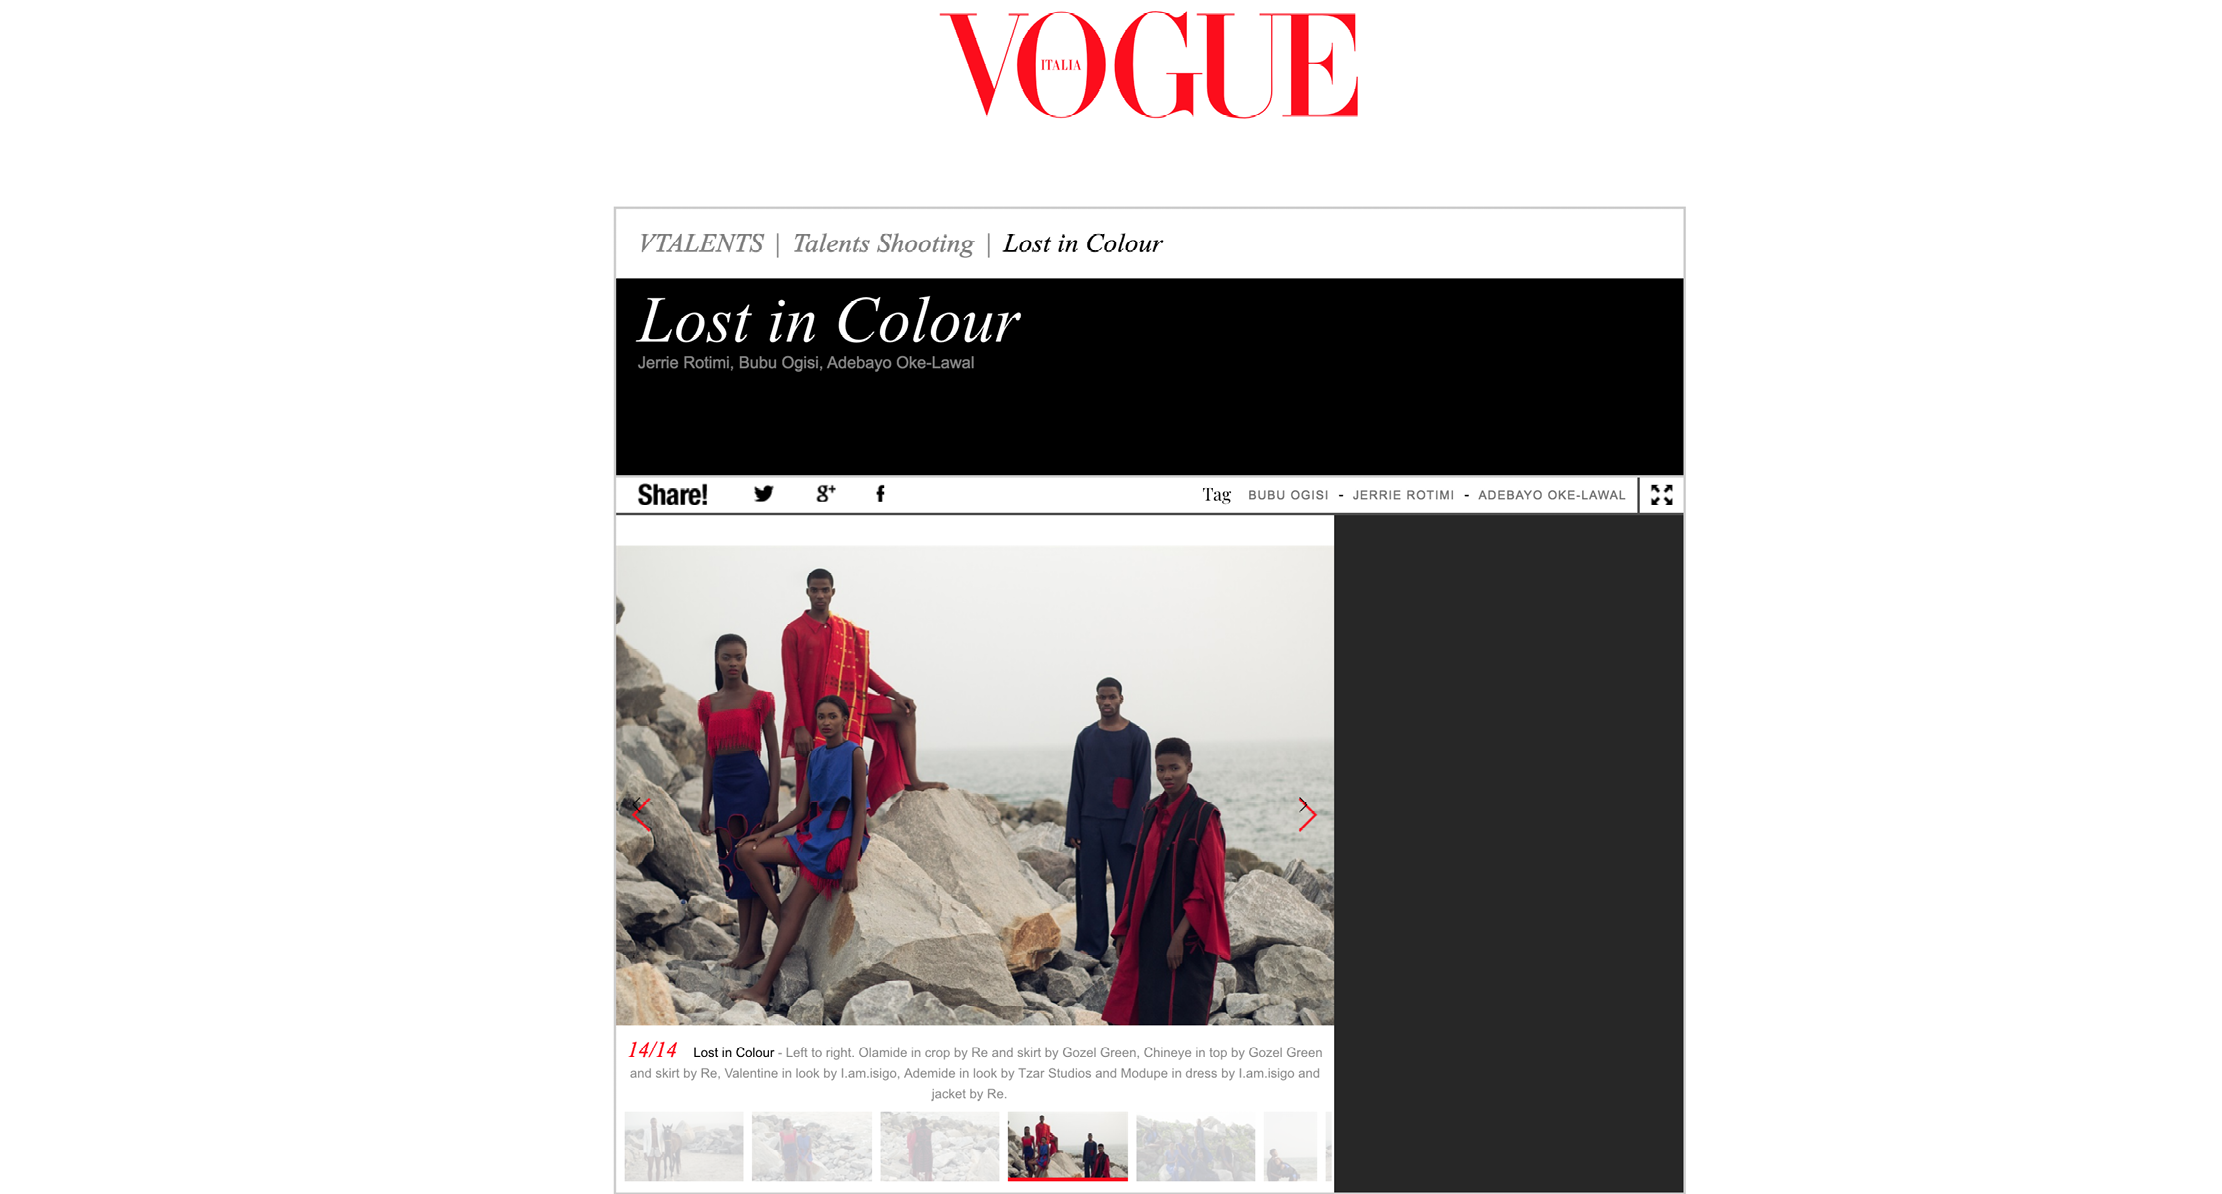 Kenneth Ize Vogue Italia African Talents. Lost in Colour. Jerrie Rotimi Bubu Ogisi Adebayo Oke-Lawal